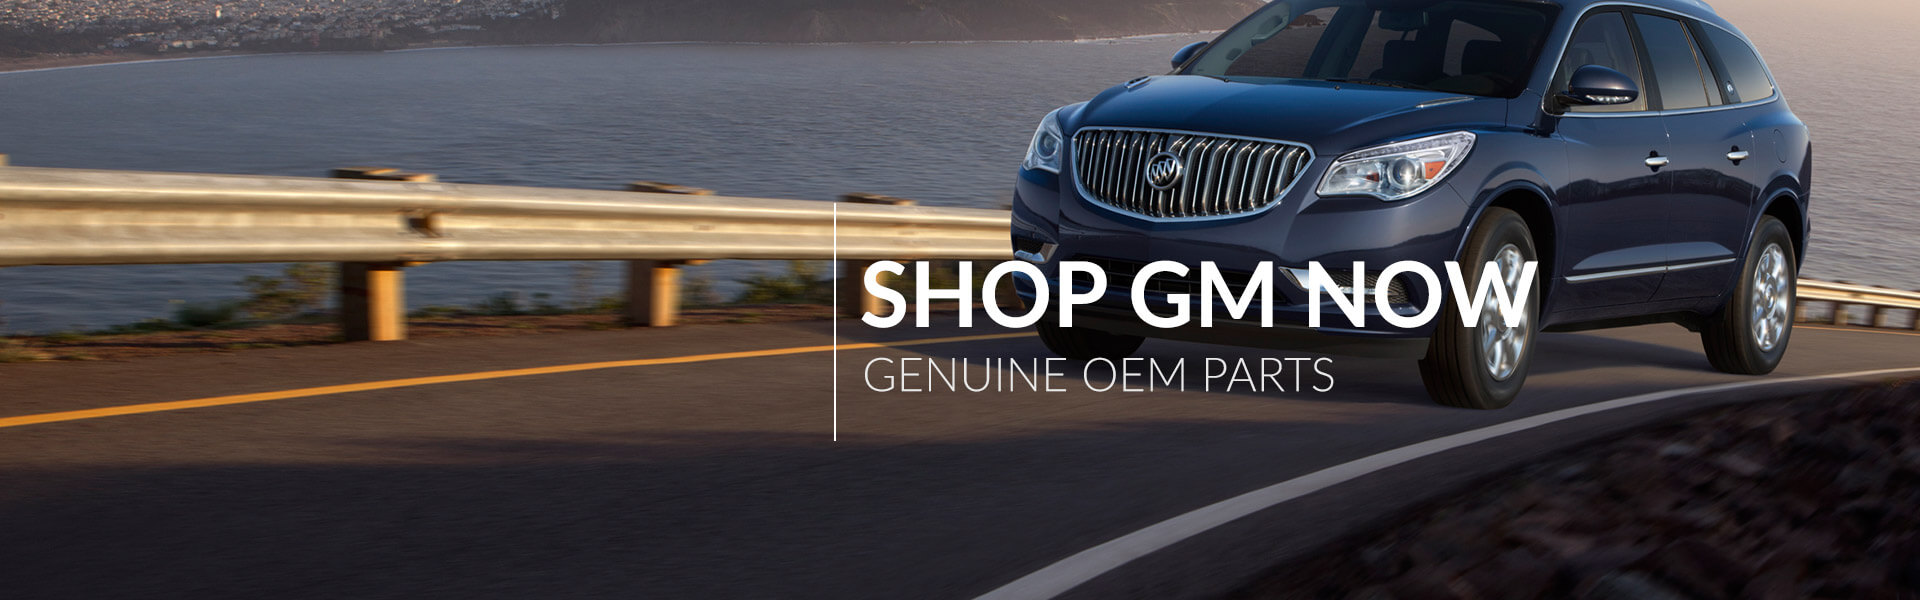 Shop GM parts Now - Genuine OEM Parts